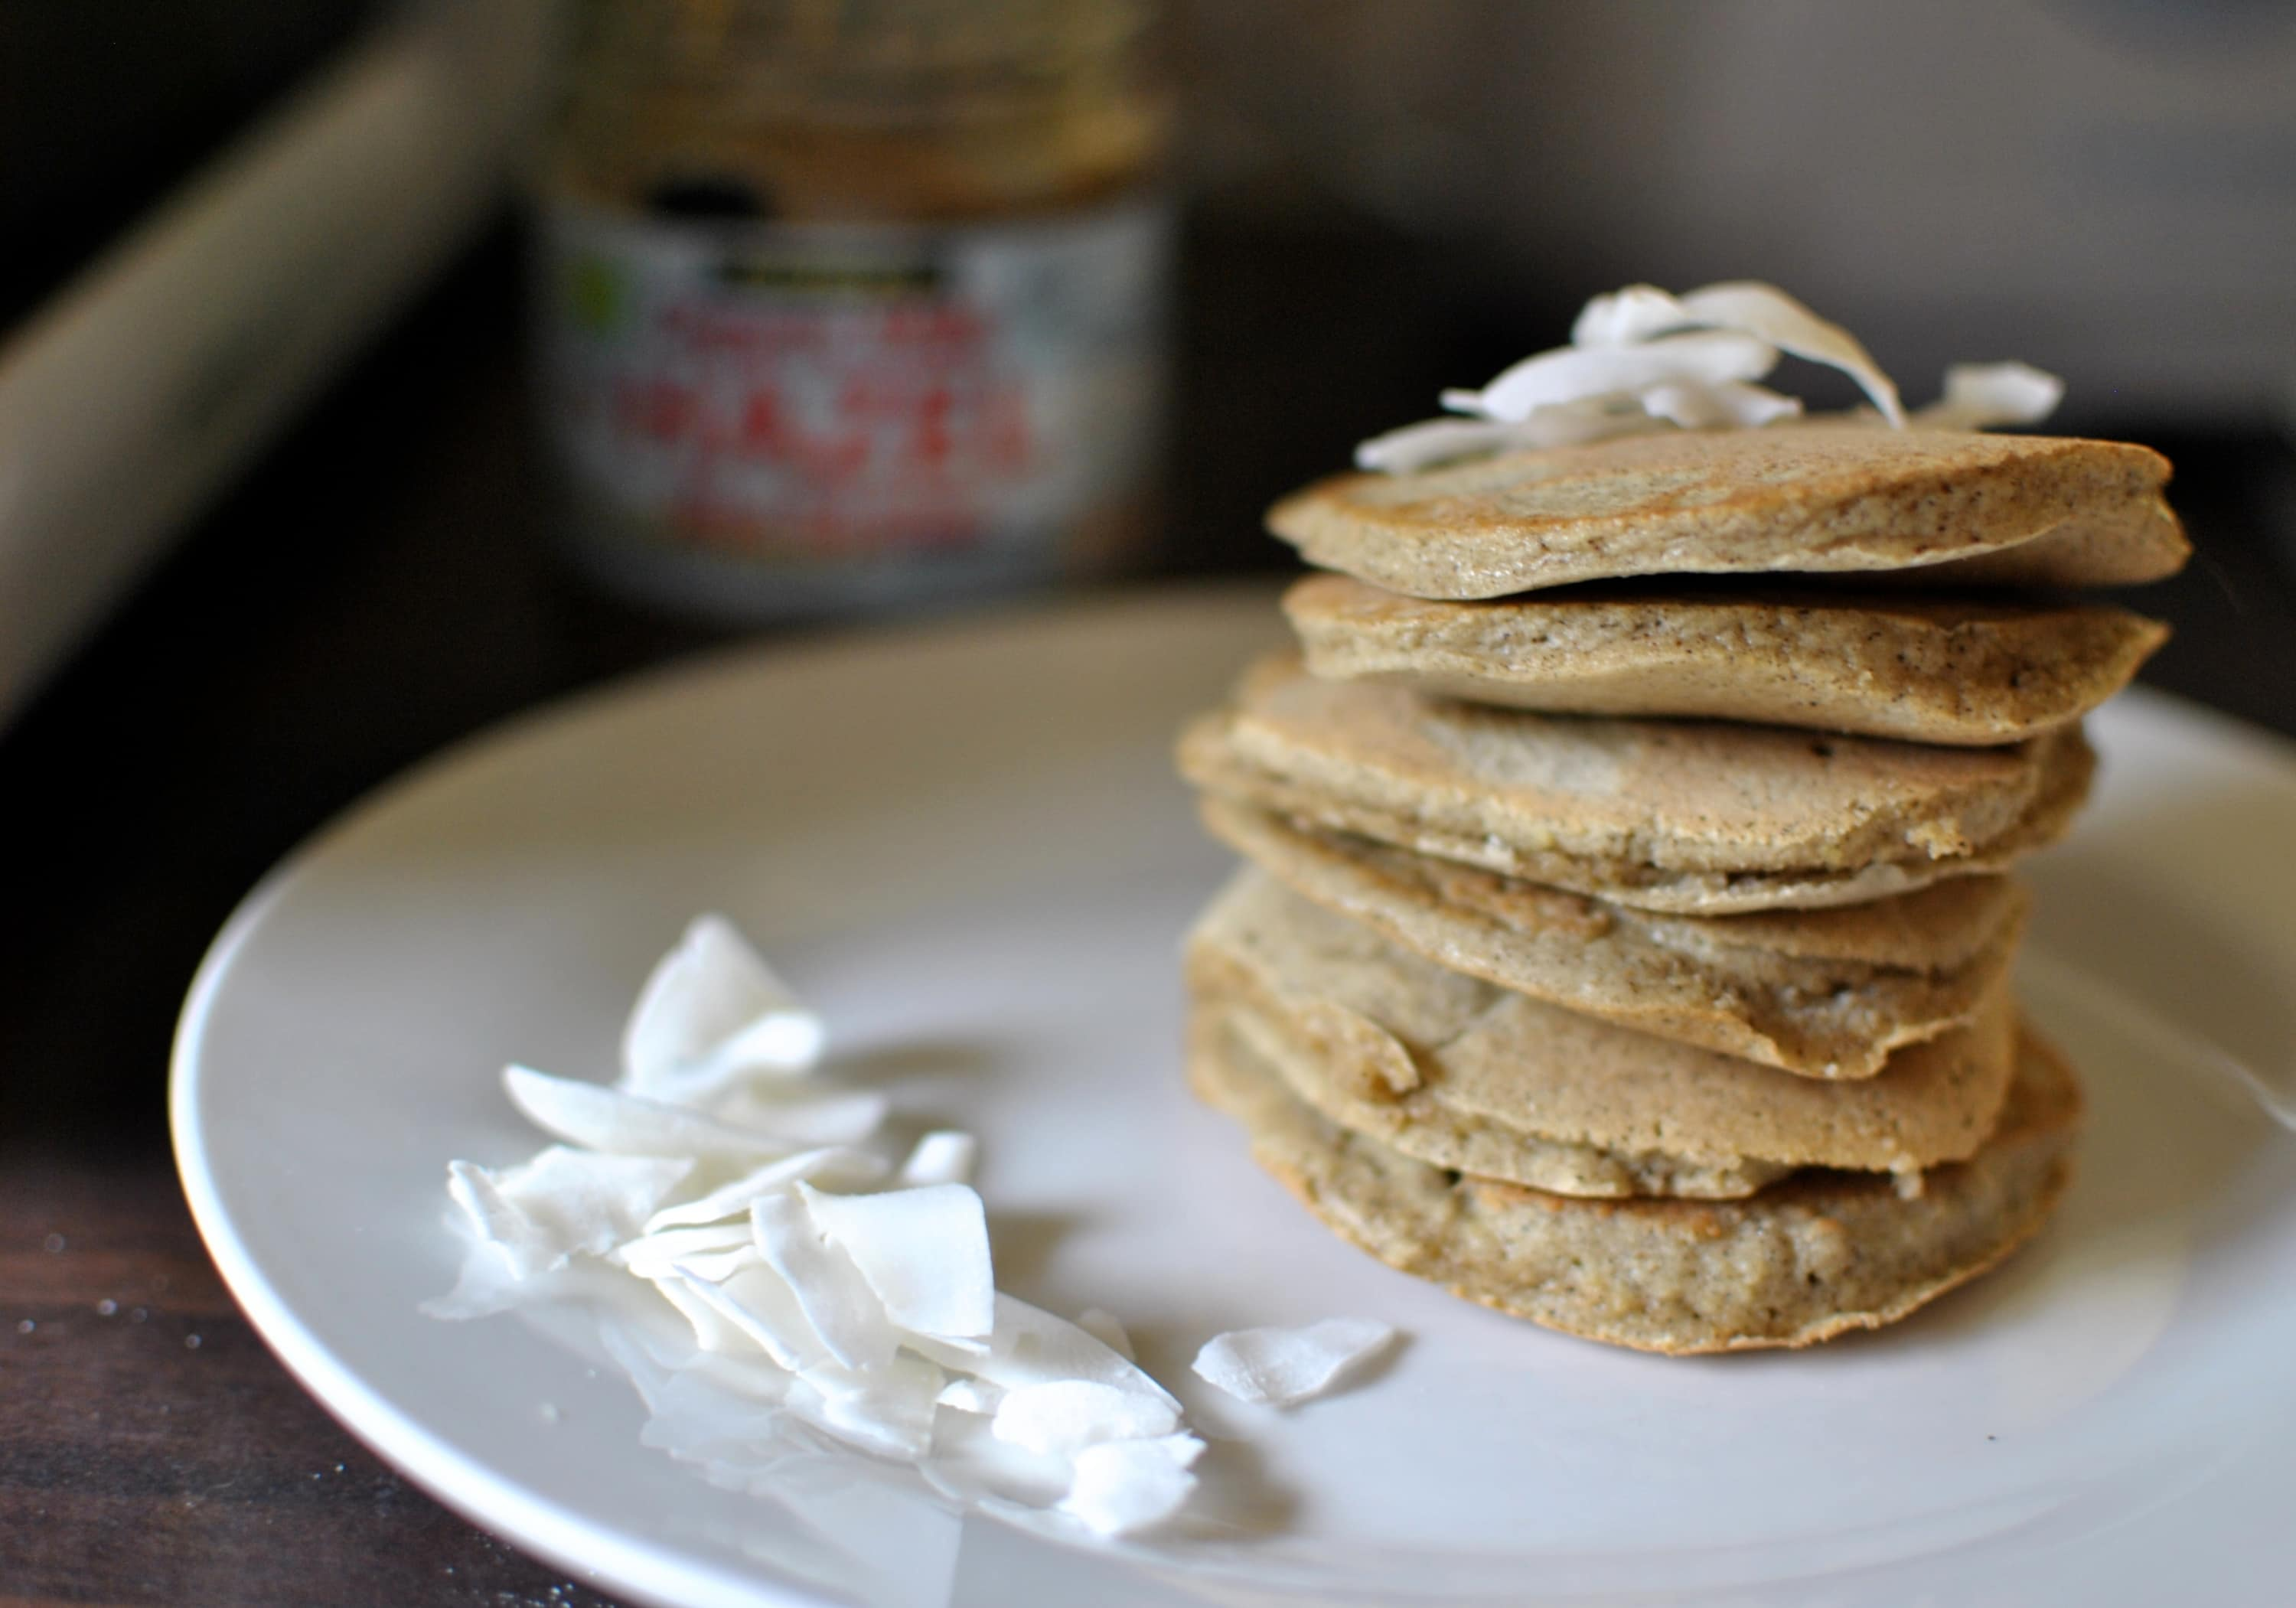 Recipe: Anti-Candida diet: pancakes